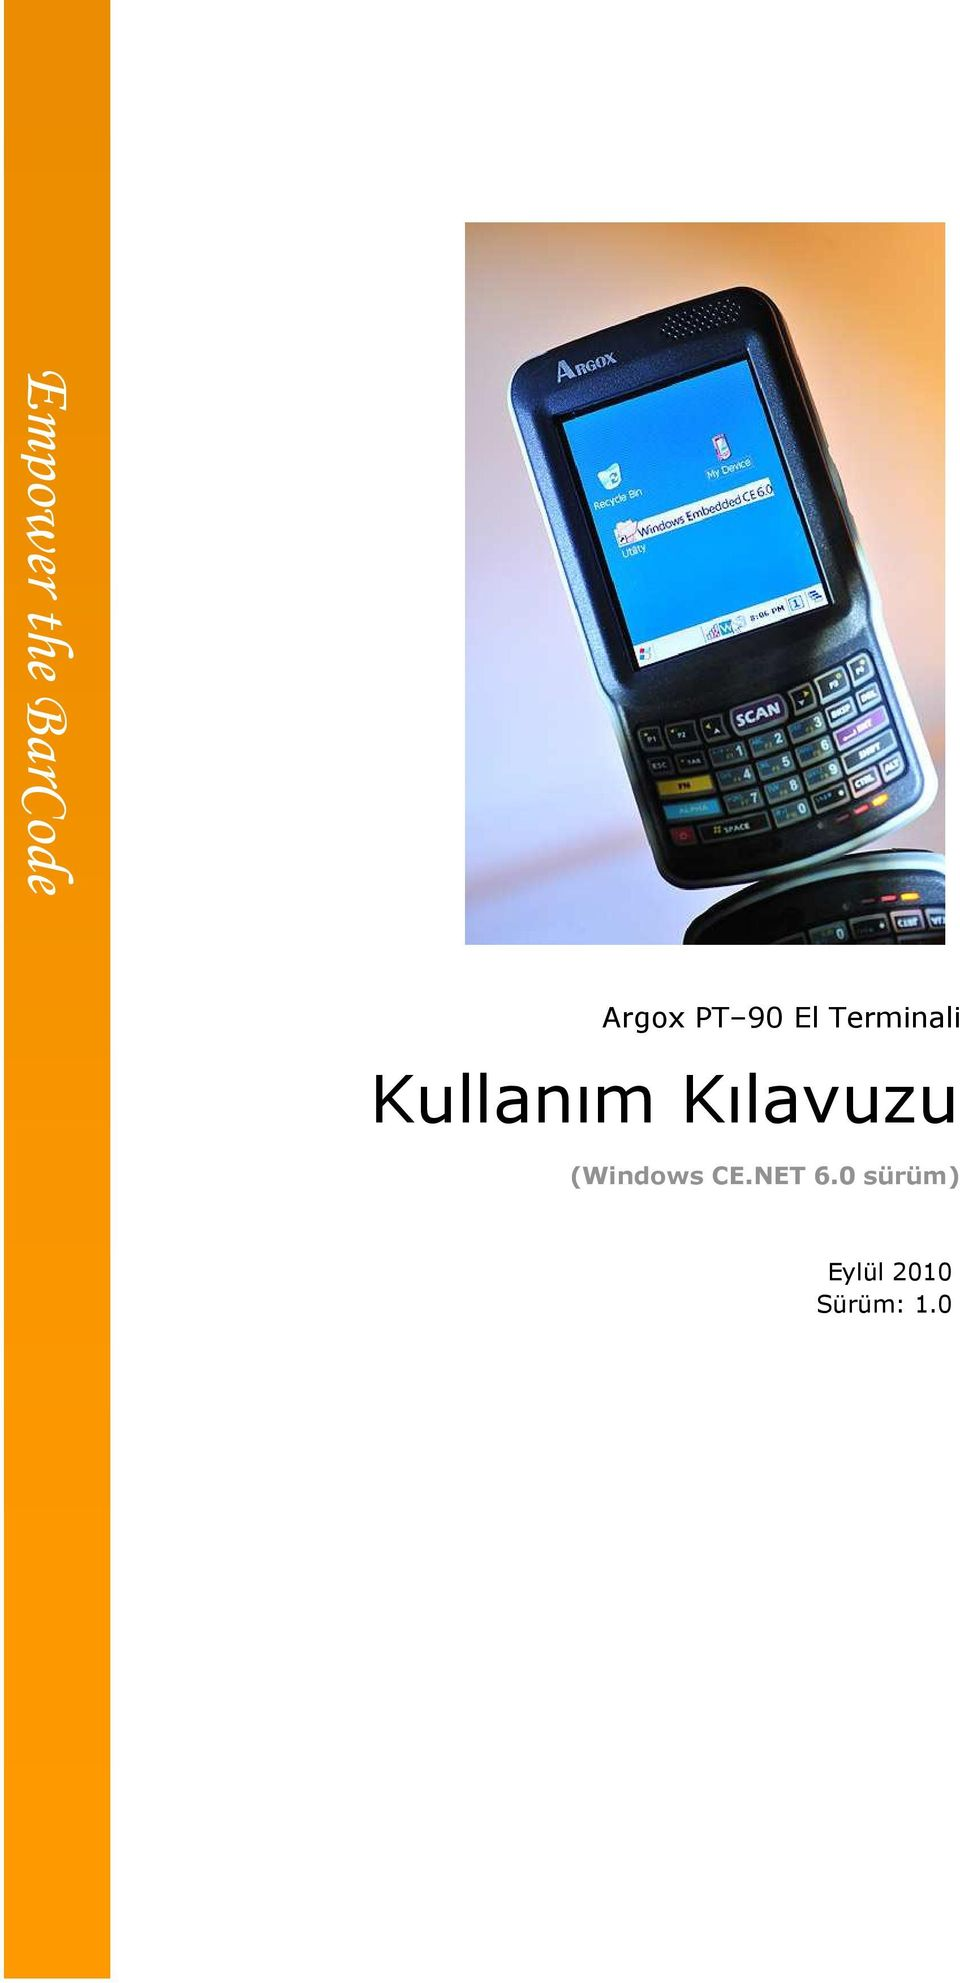 Kılavuzu (Windows CE.NET 6.